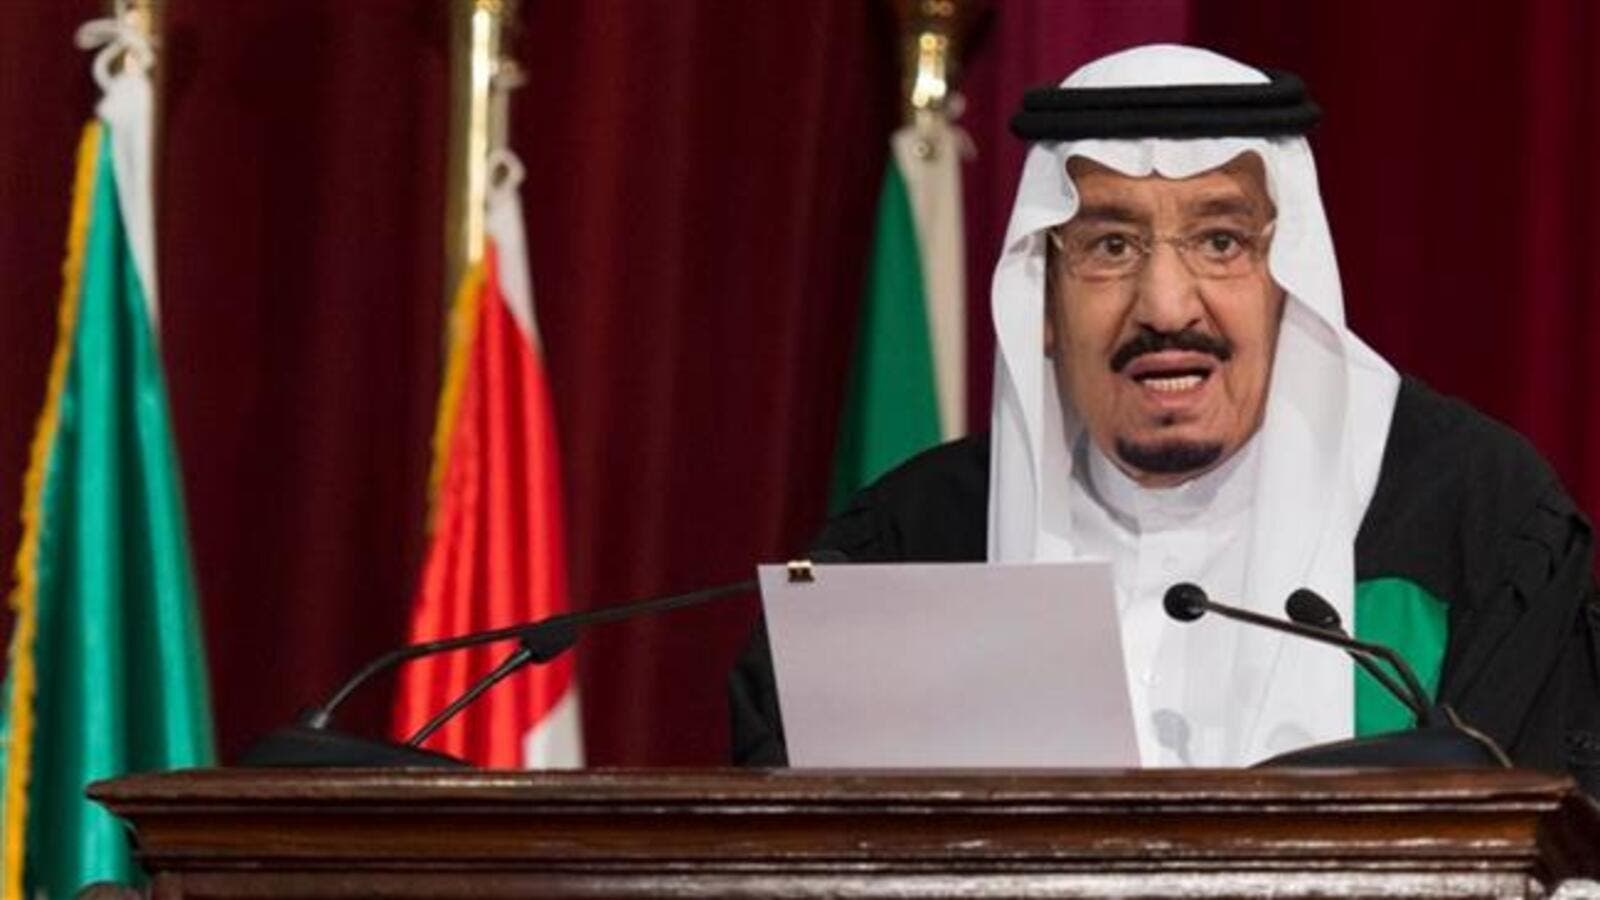 The Saudi Cabinet, Chaired by King Salman, expressed its condemnation of Israeli violations against Al-Aqsa Mosque and the Palestinian people. (AFP/ File Photo)